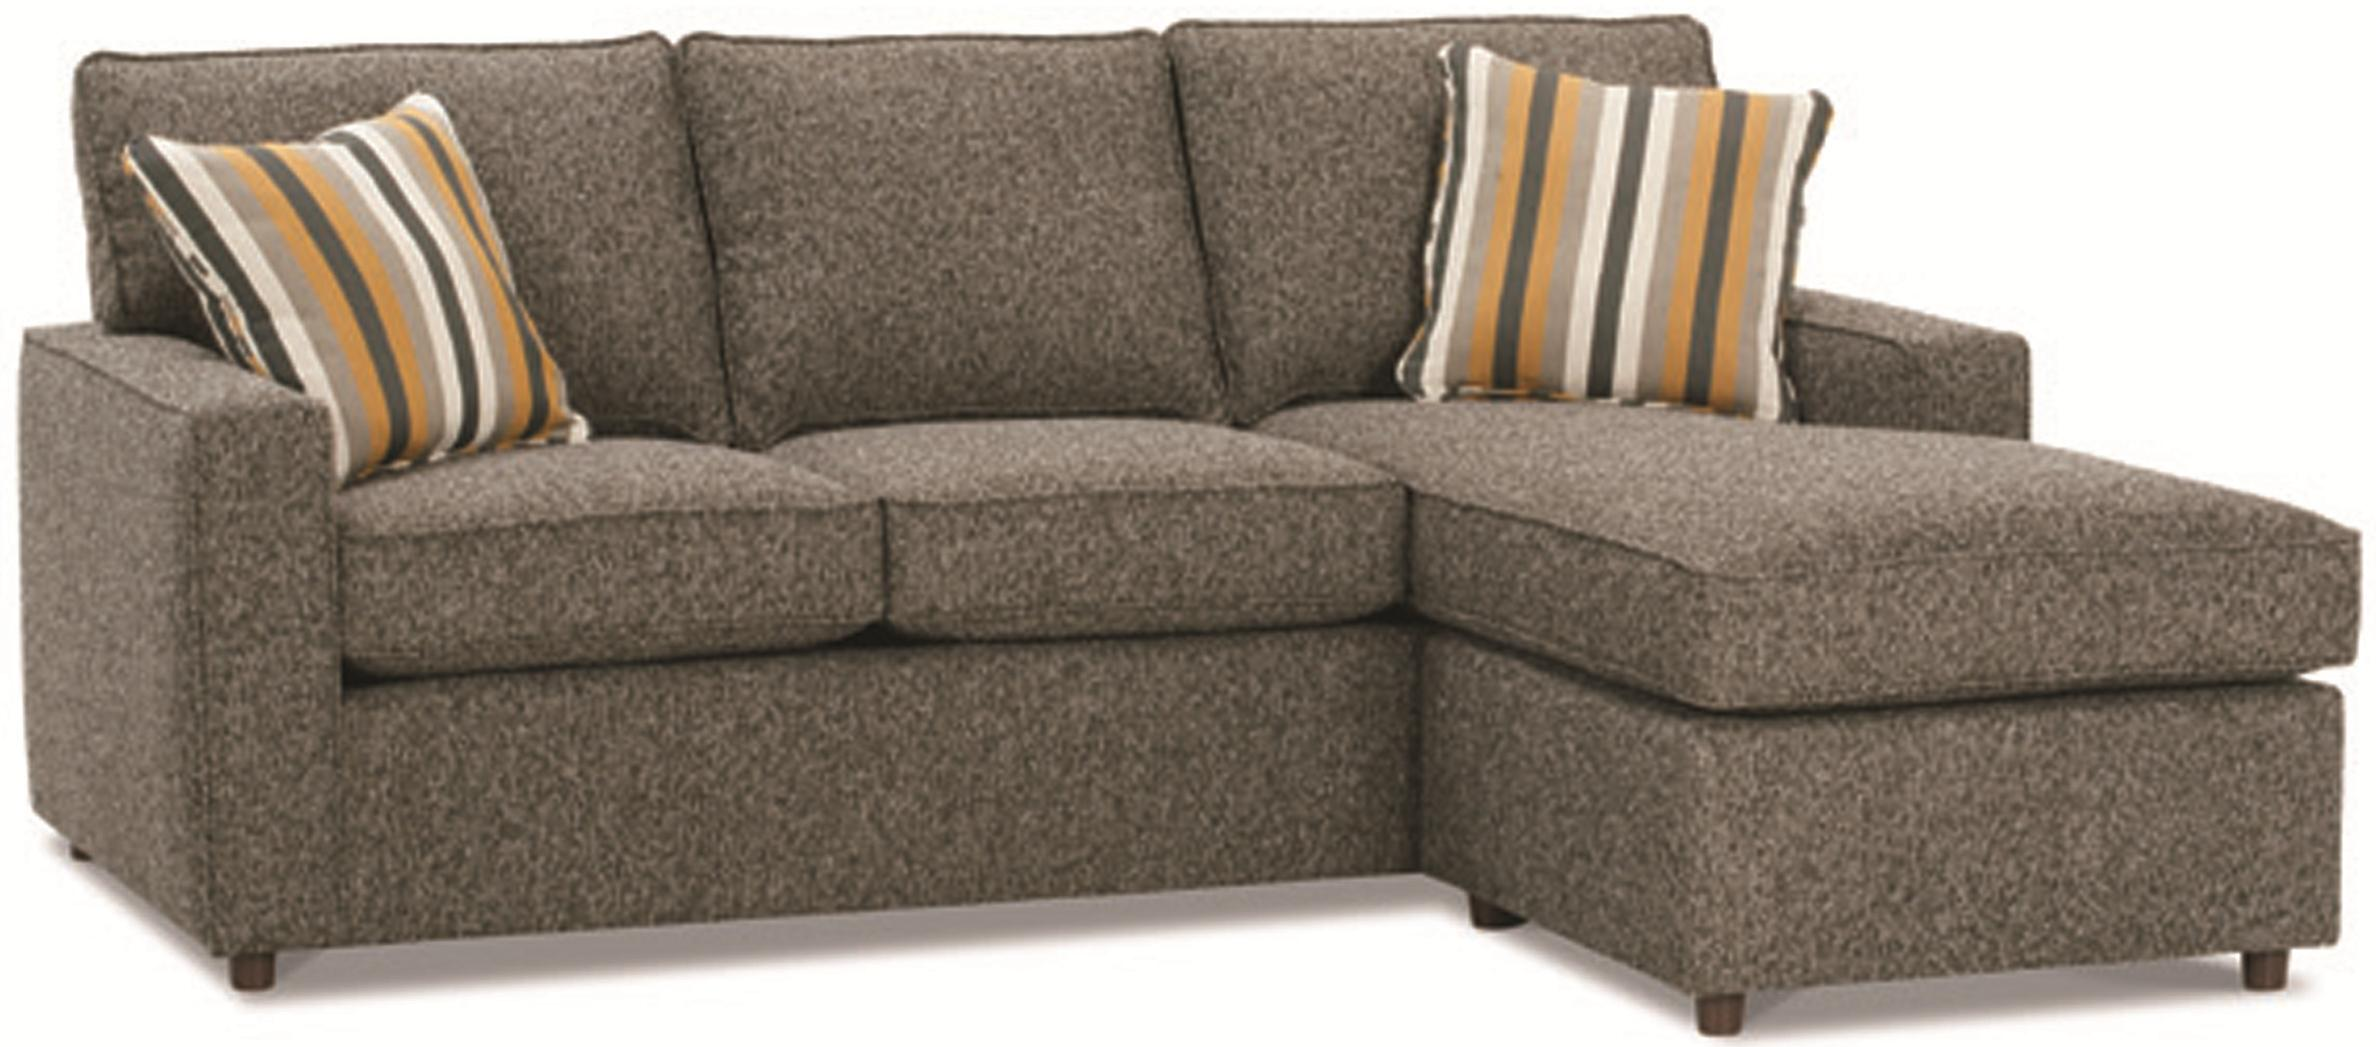 Rowe Monaco Contemporary Sofa with Reversible Chaise Ottoman